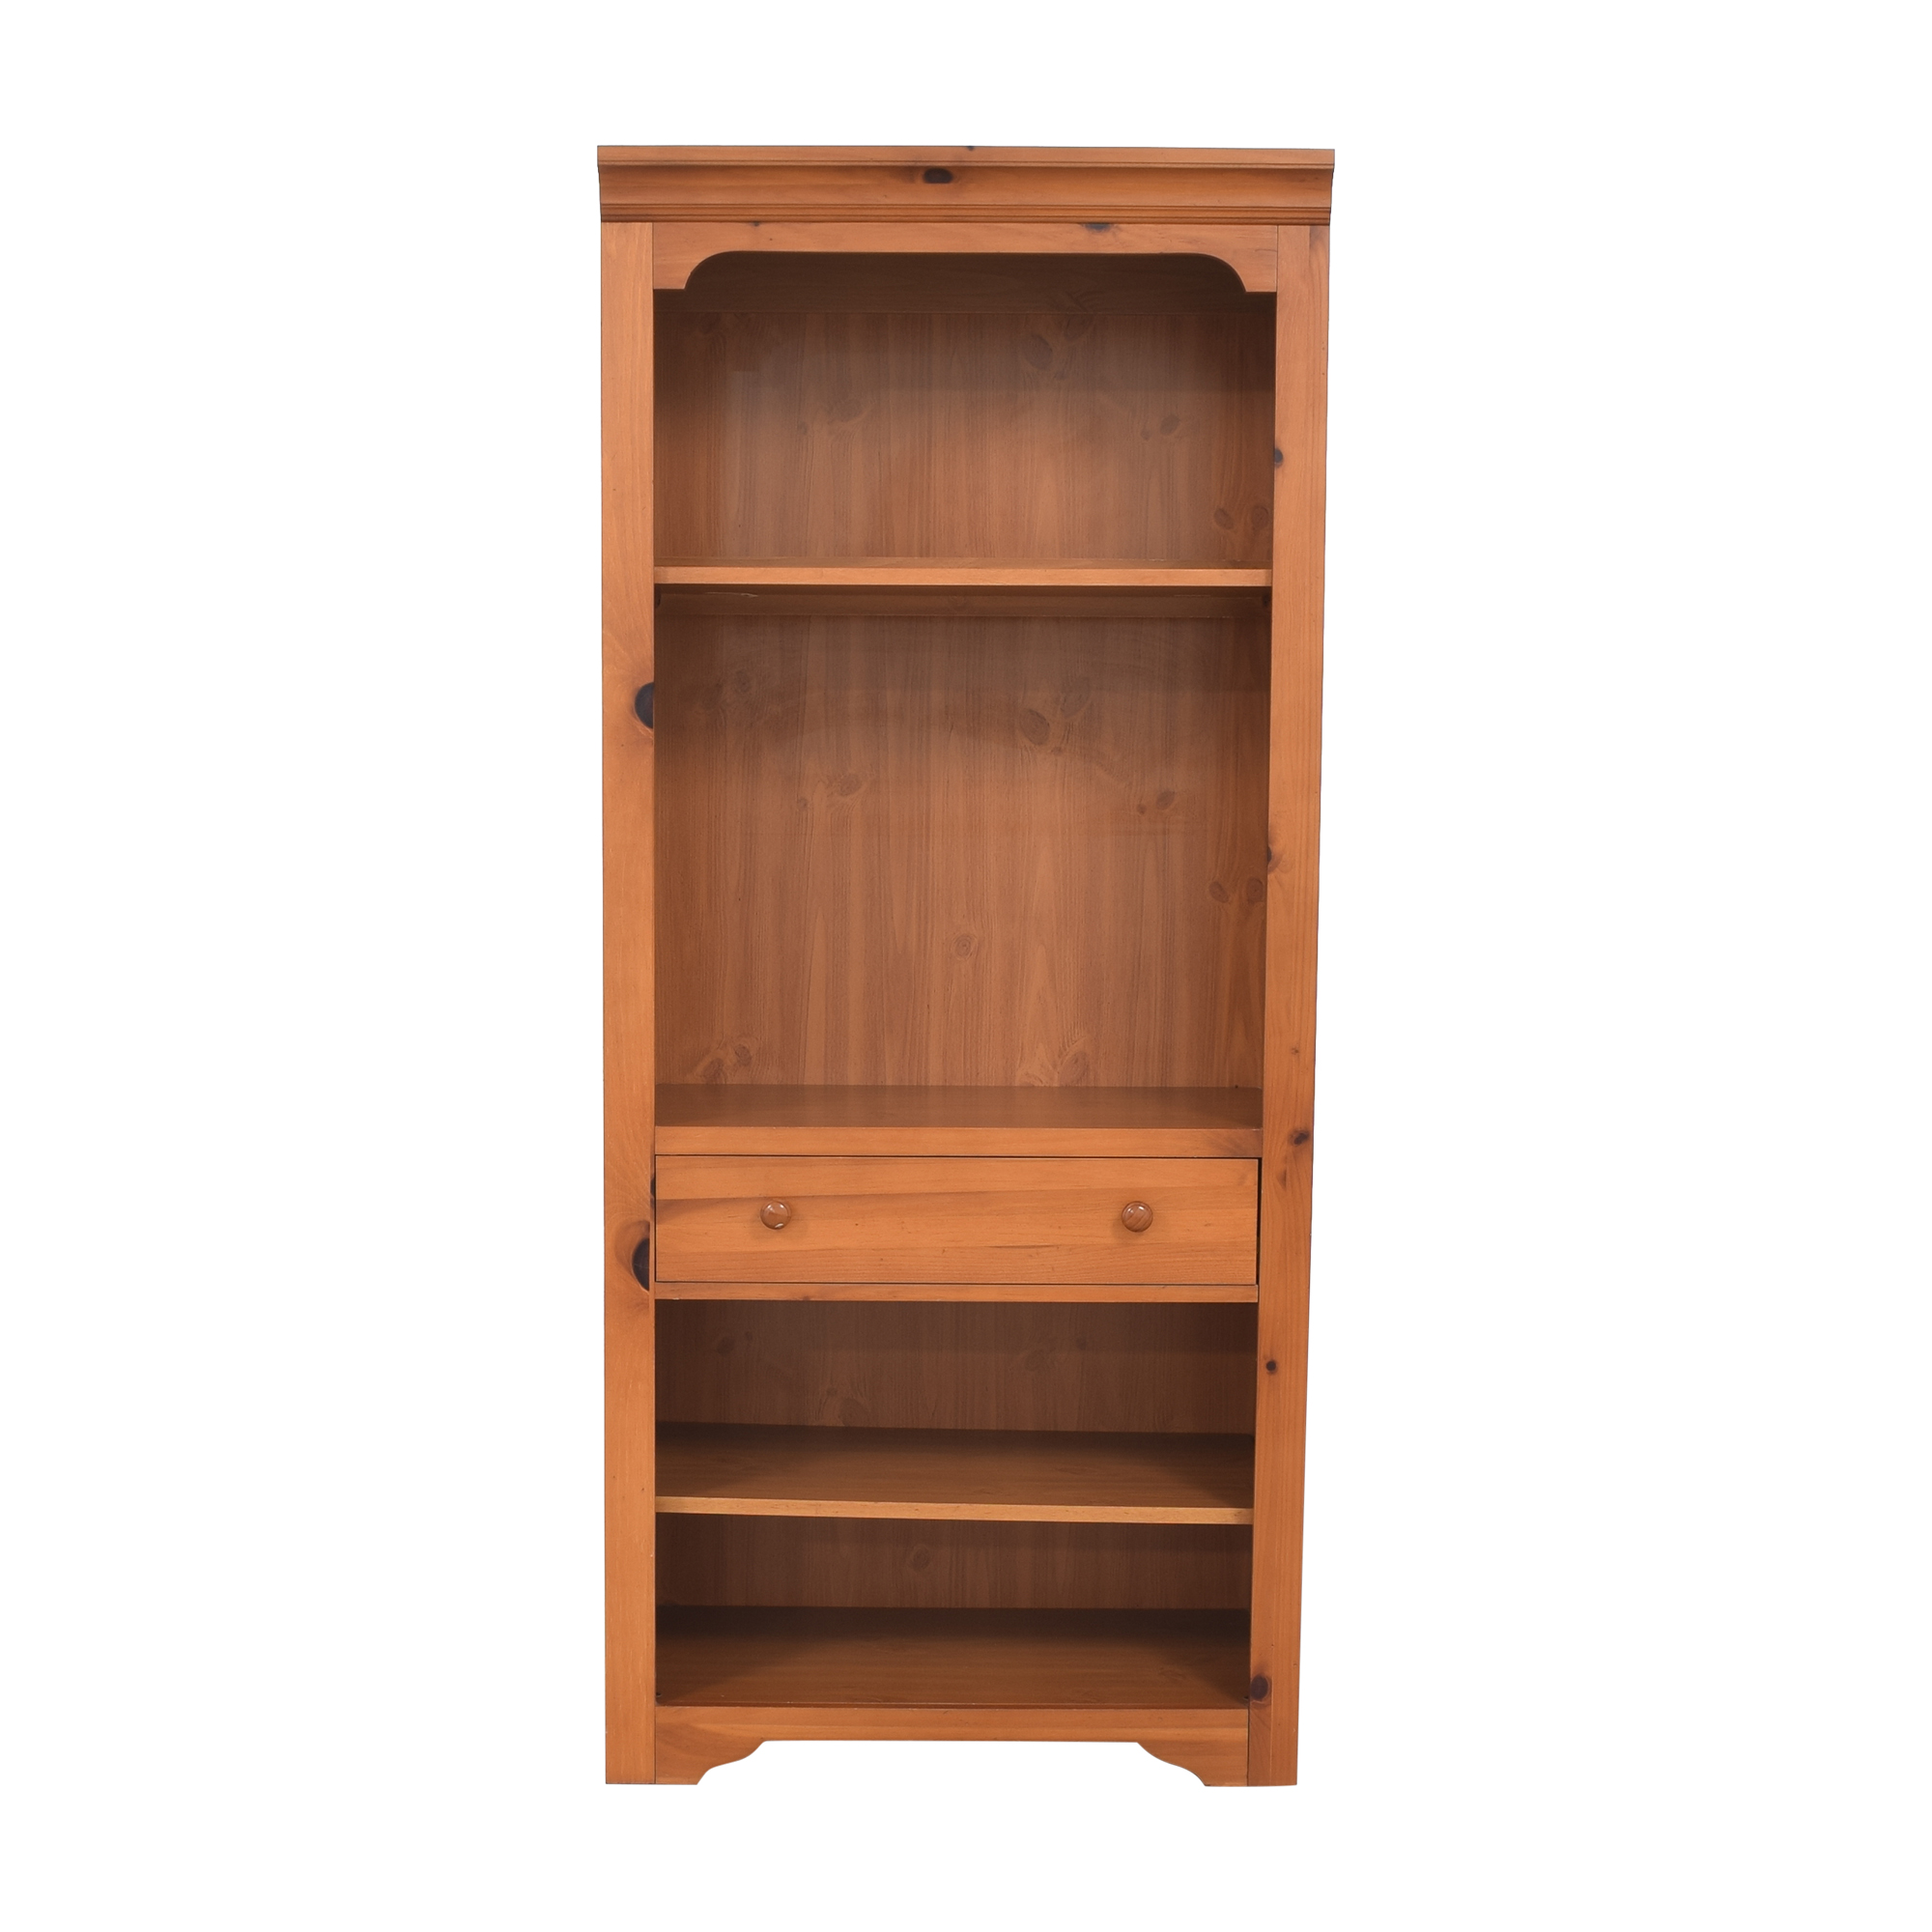 Broyhill Furniture Broyhill Furniture Lighted Bookshelf discount